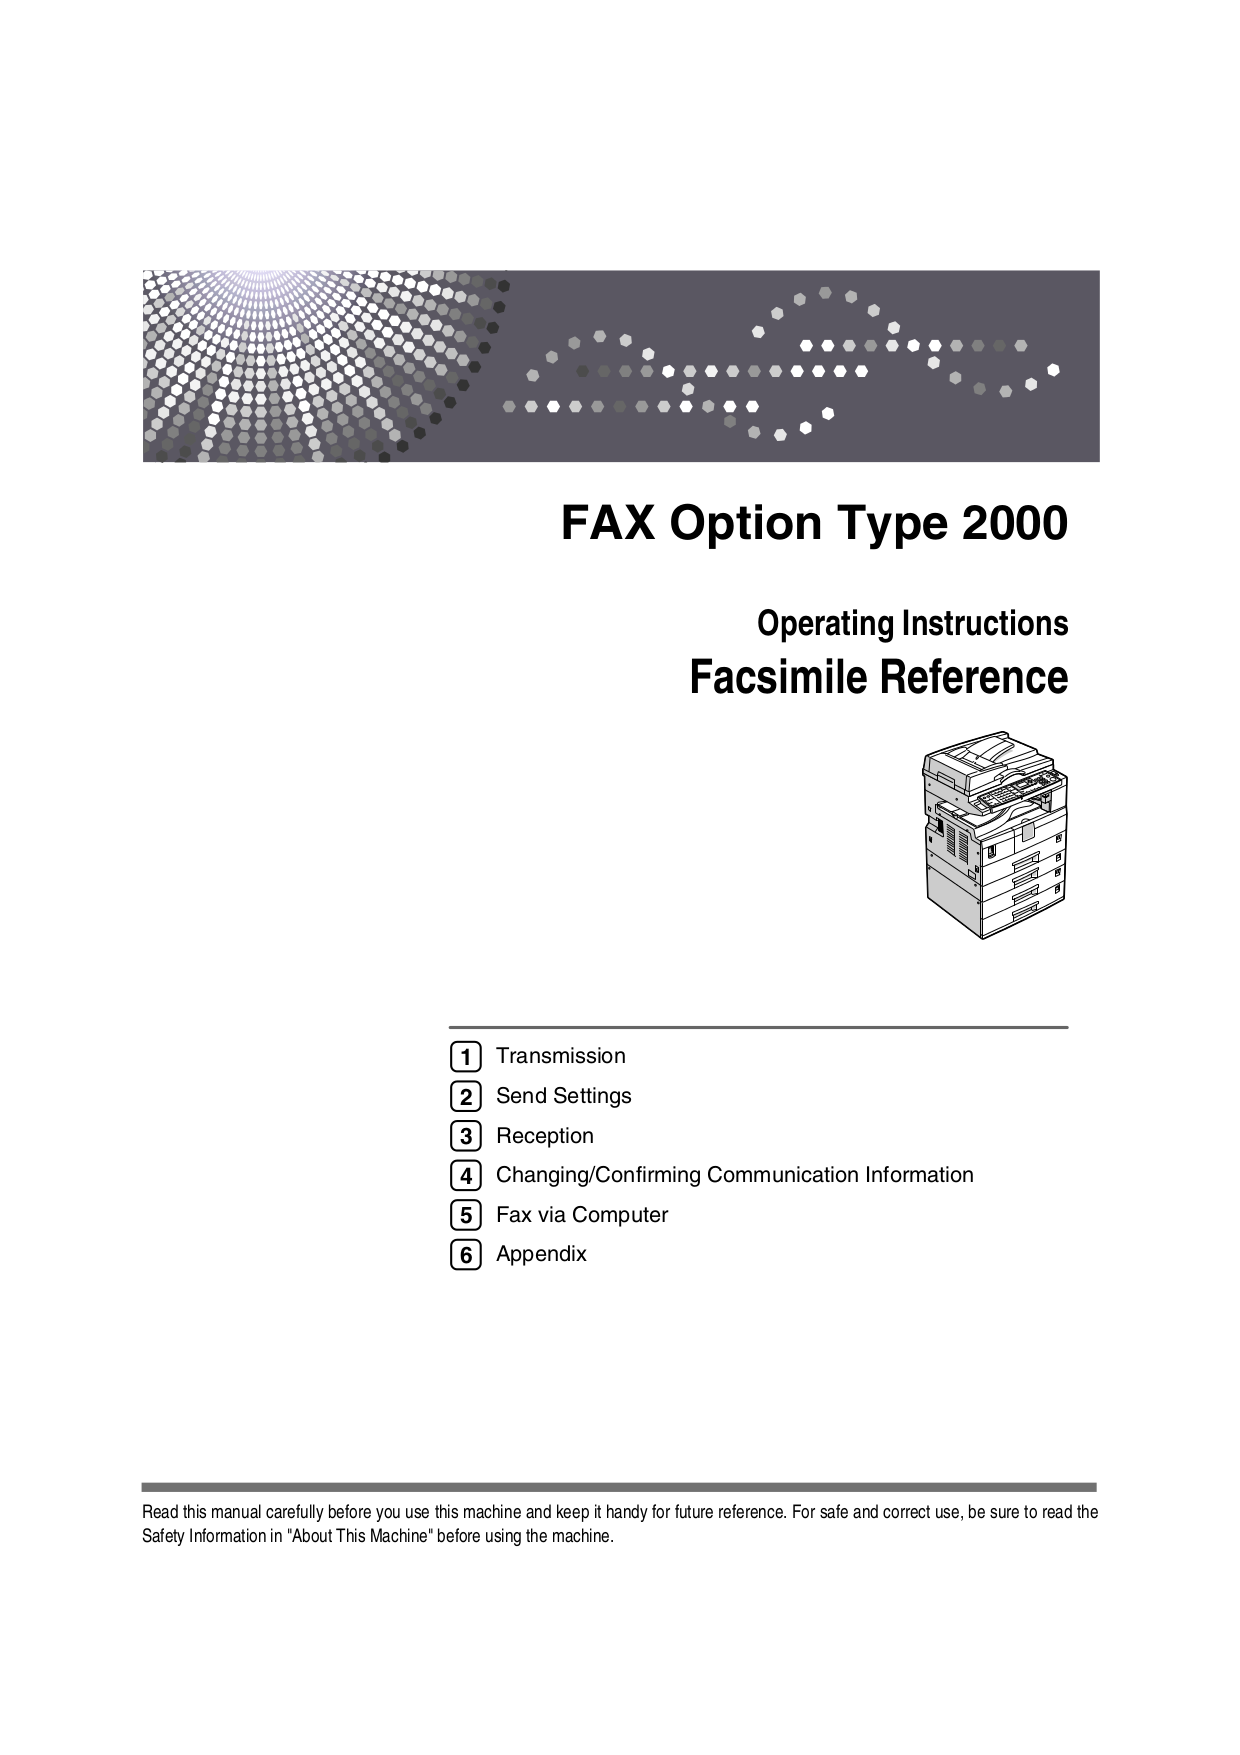 Ricoh Fax Manuals Http Mk1 Performance Conversions Co Uk Wiring Diagram Moke To 1967 Array Download Free Pdf For Fax2000l Machine Manual Rh Umlib Com